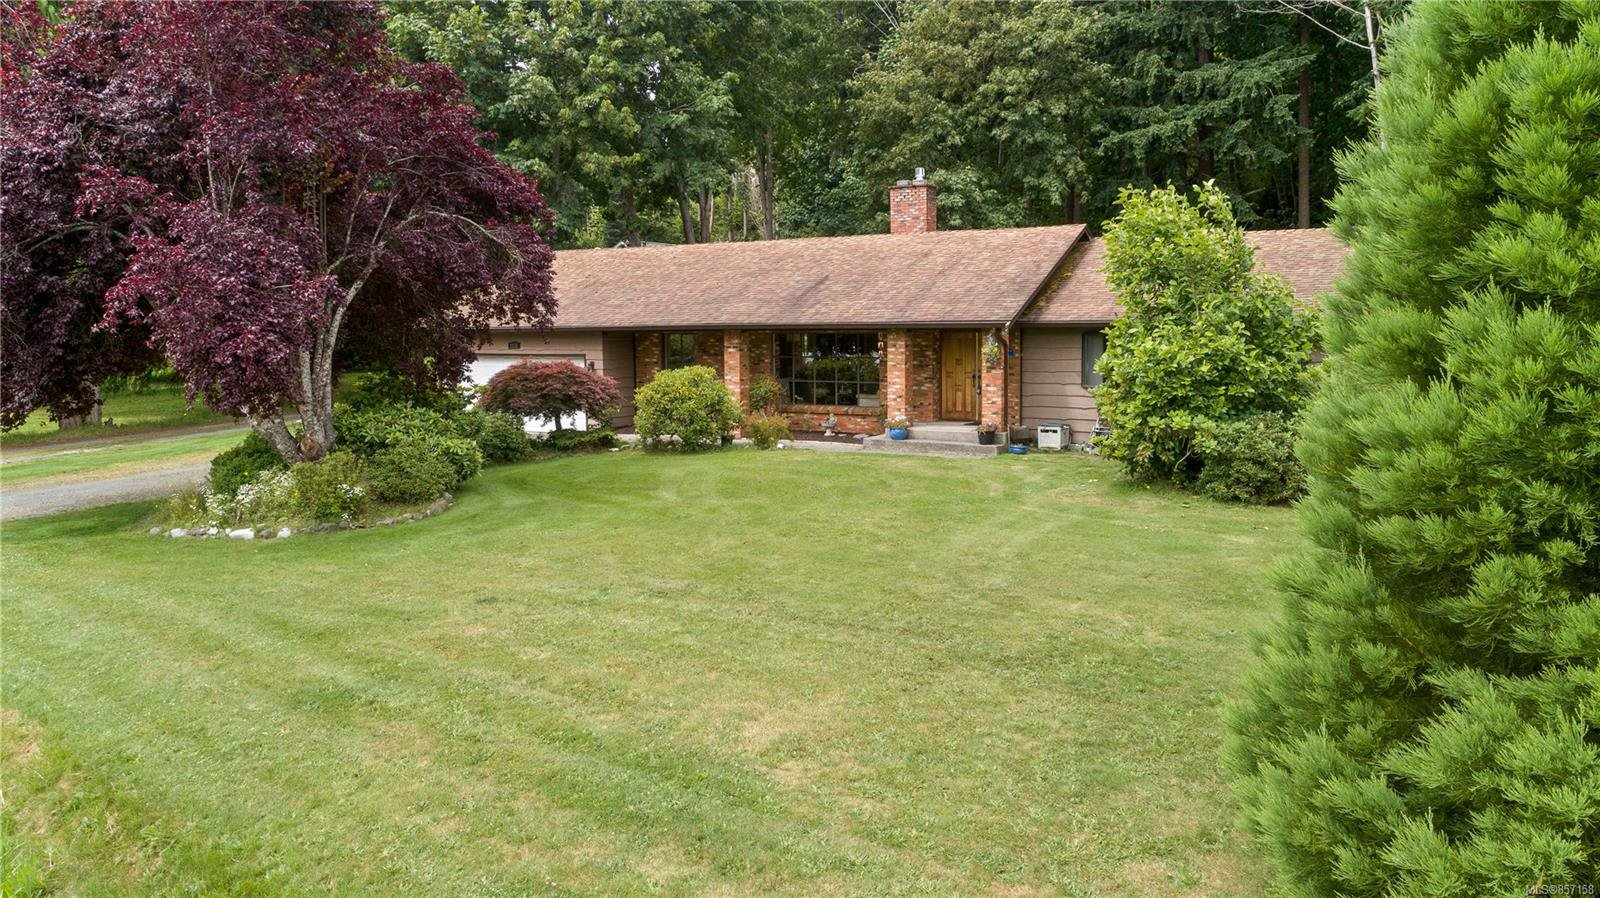 Main Photo: 2520 Spring Rd in : CR Campbell River North House for sale (Campbell River)  : MLS®# 857158